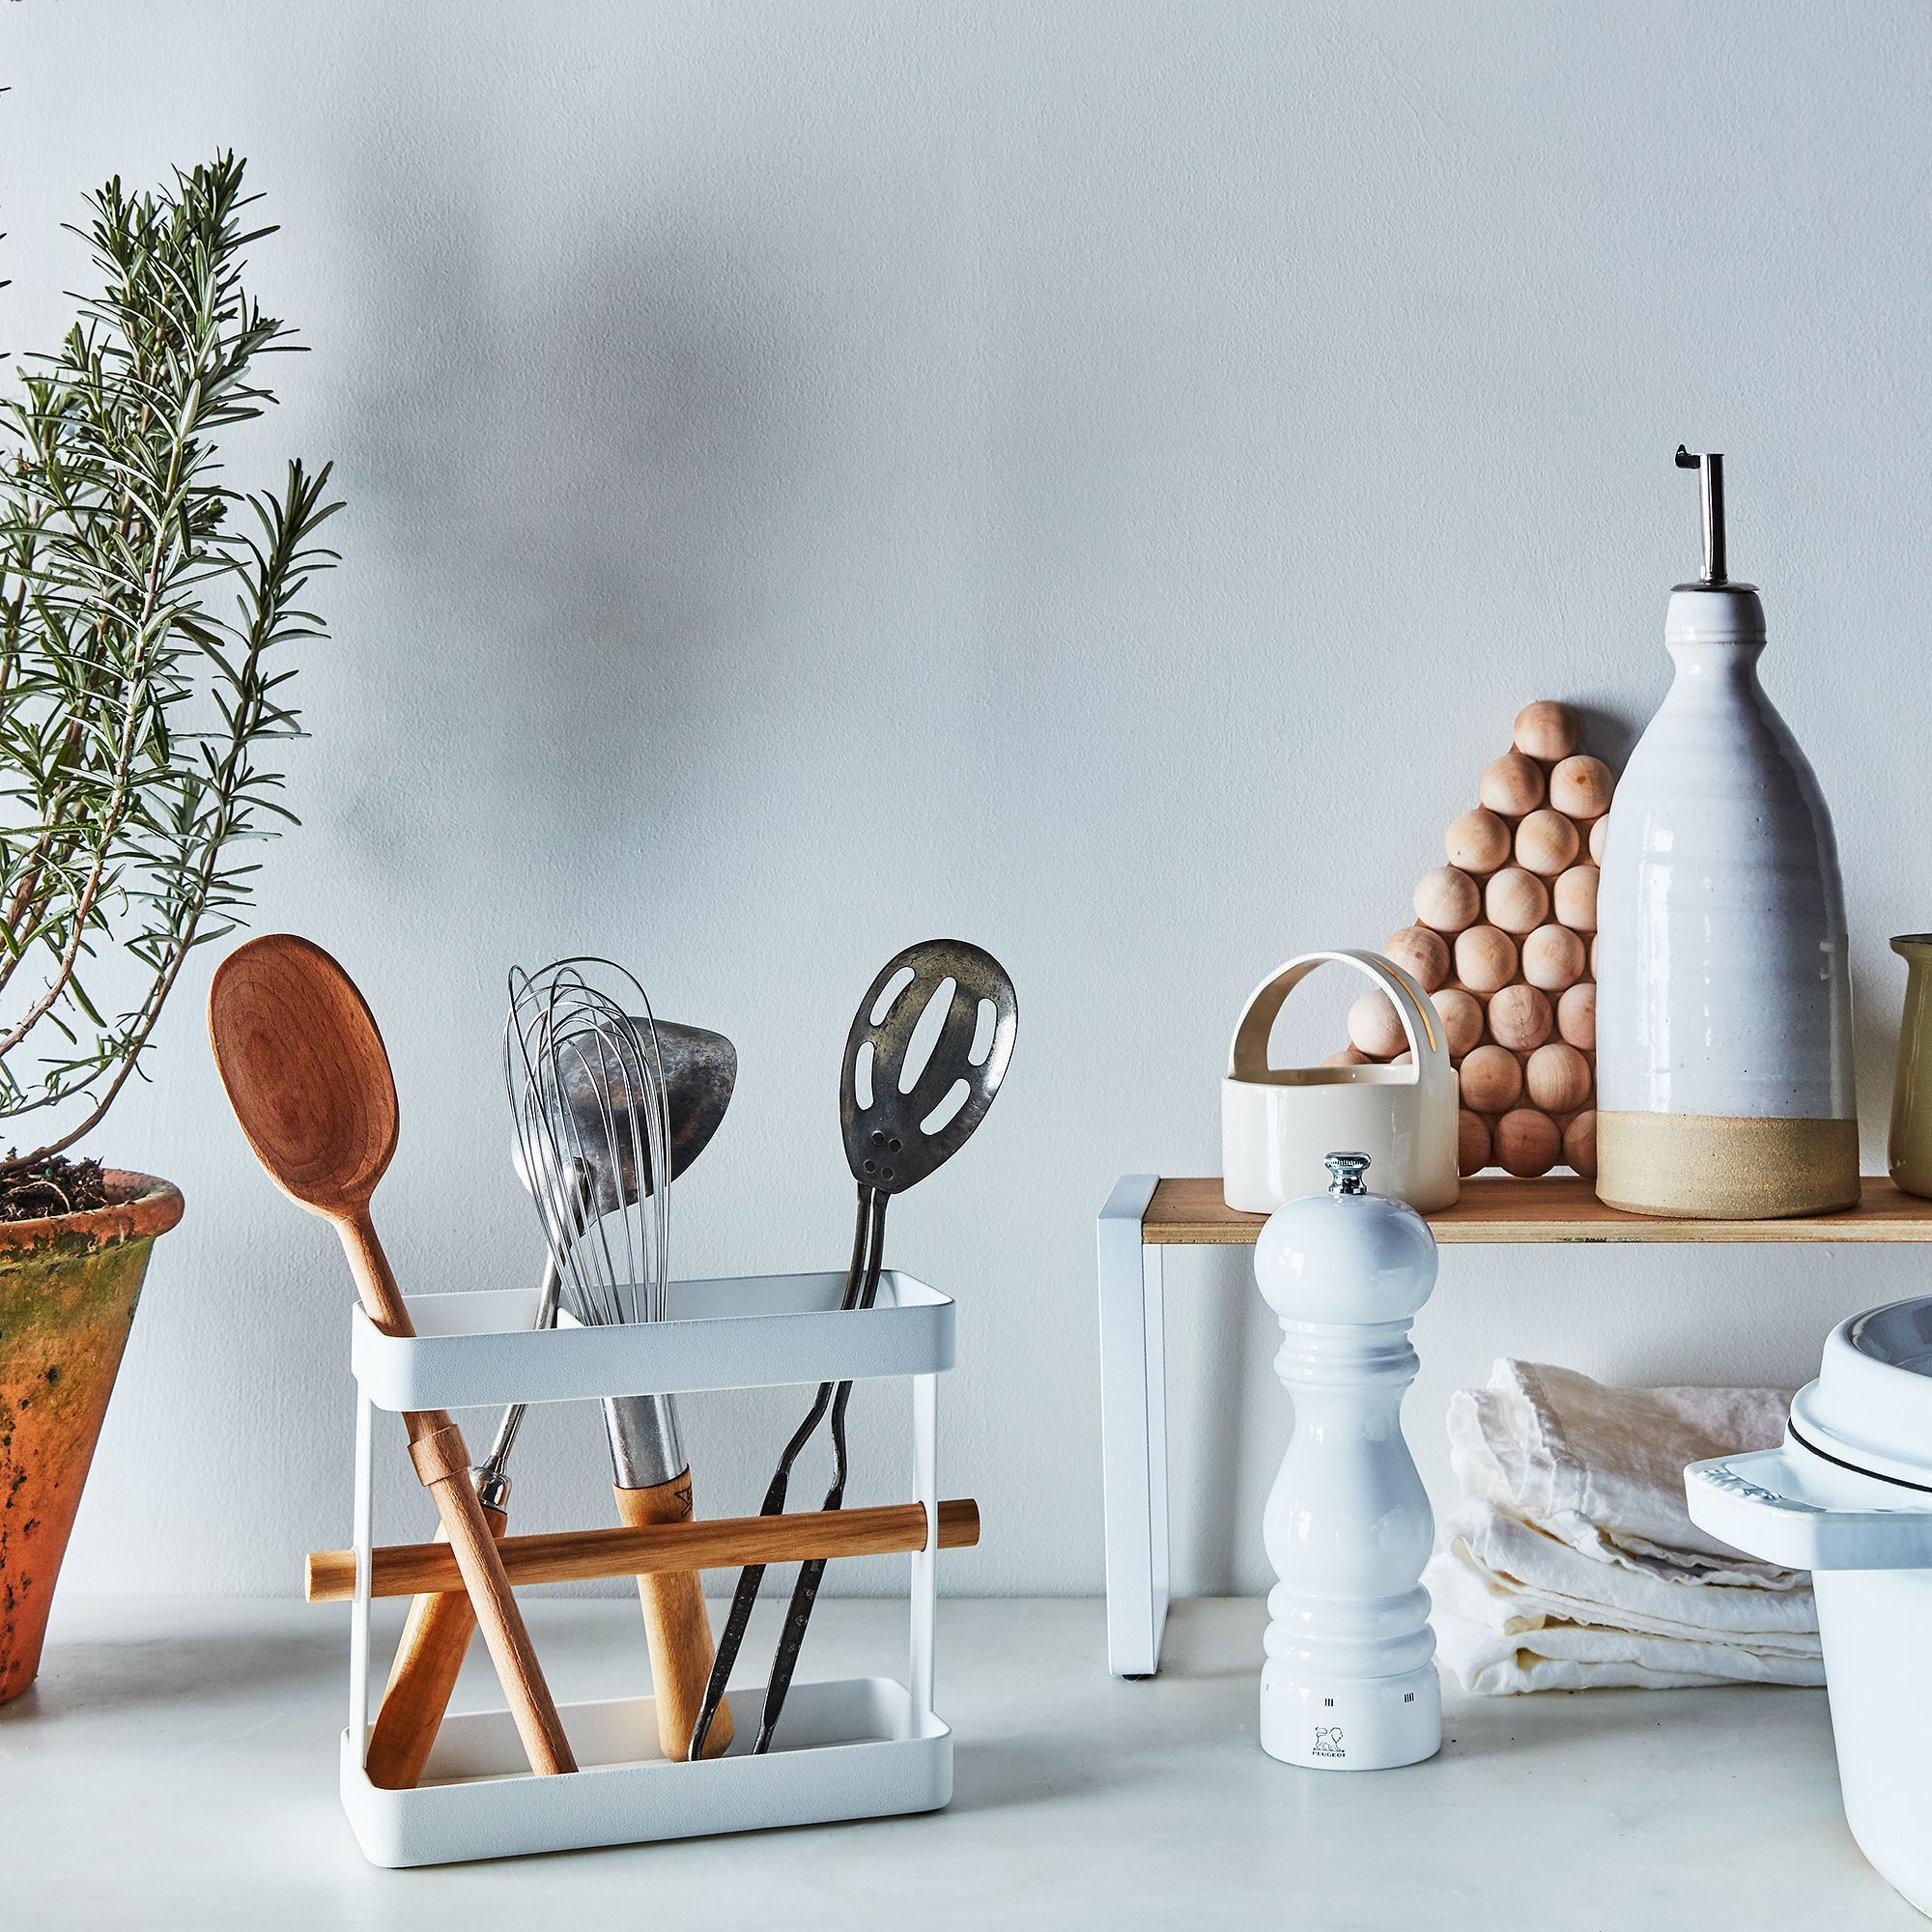 Steel & Wood Kitchen Tool Stand | Steel, Kitchens and Woods